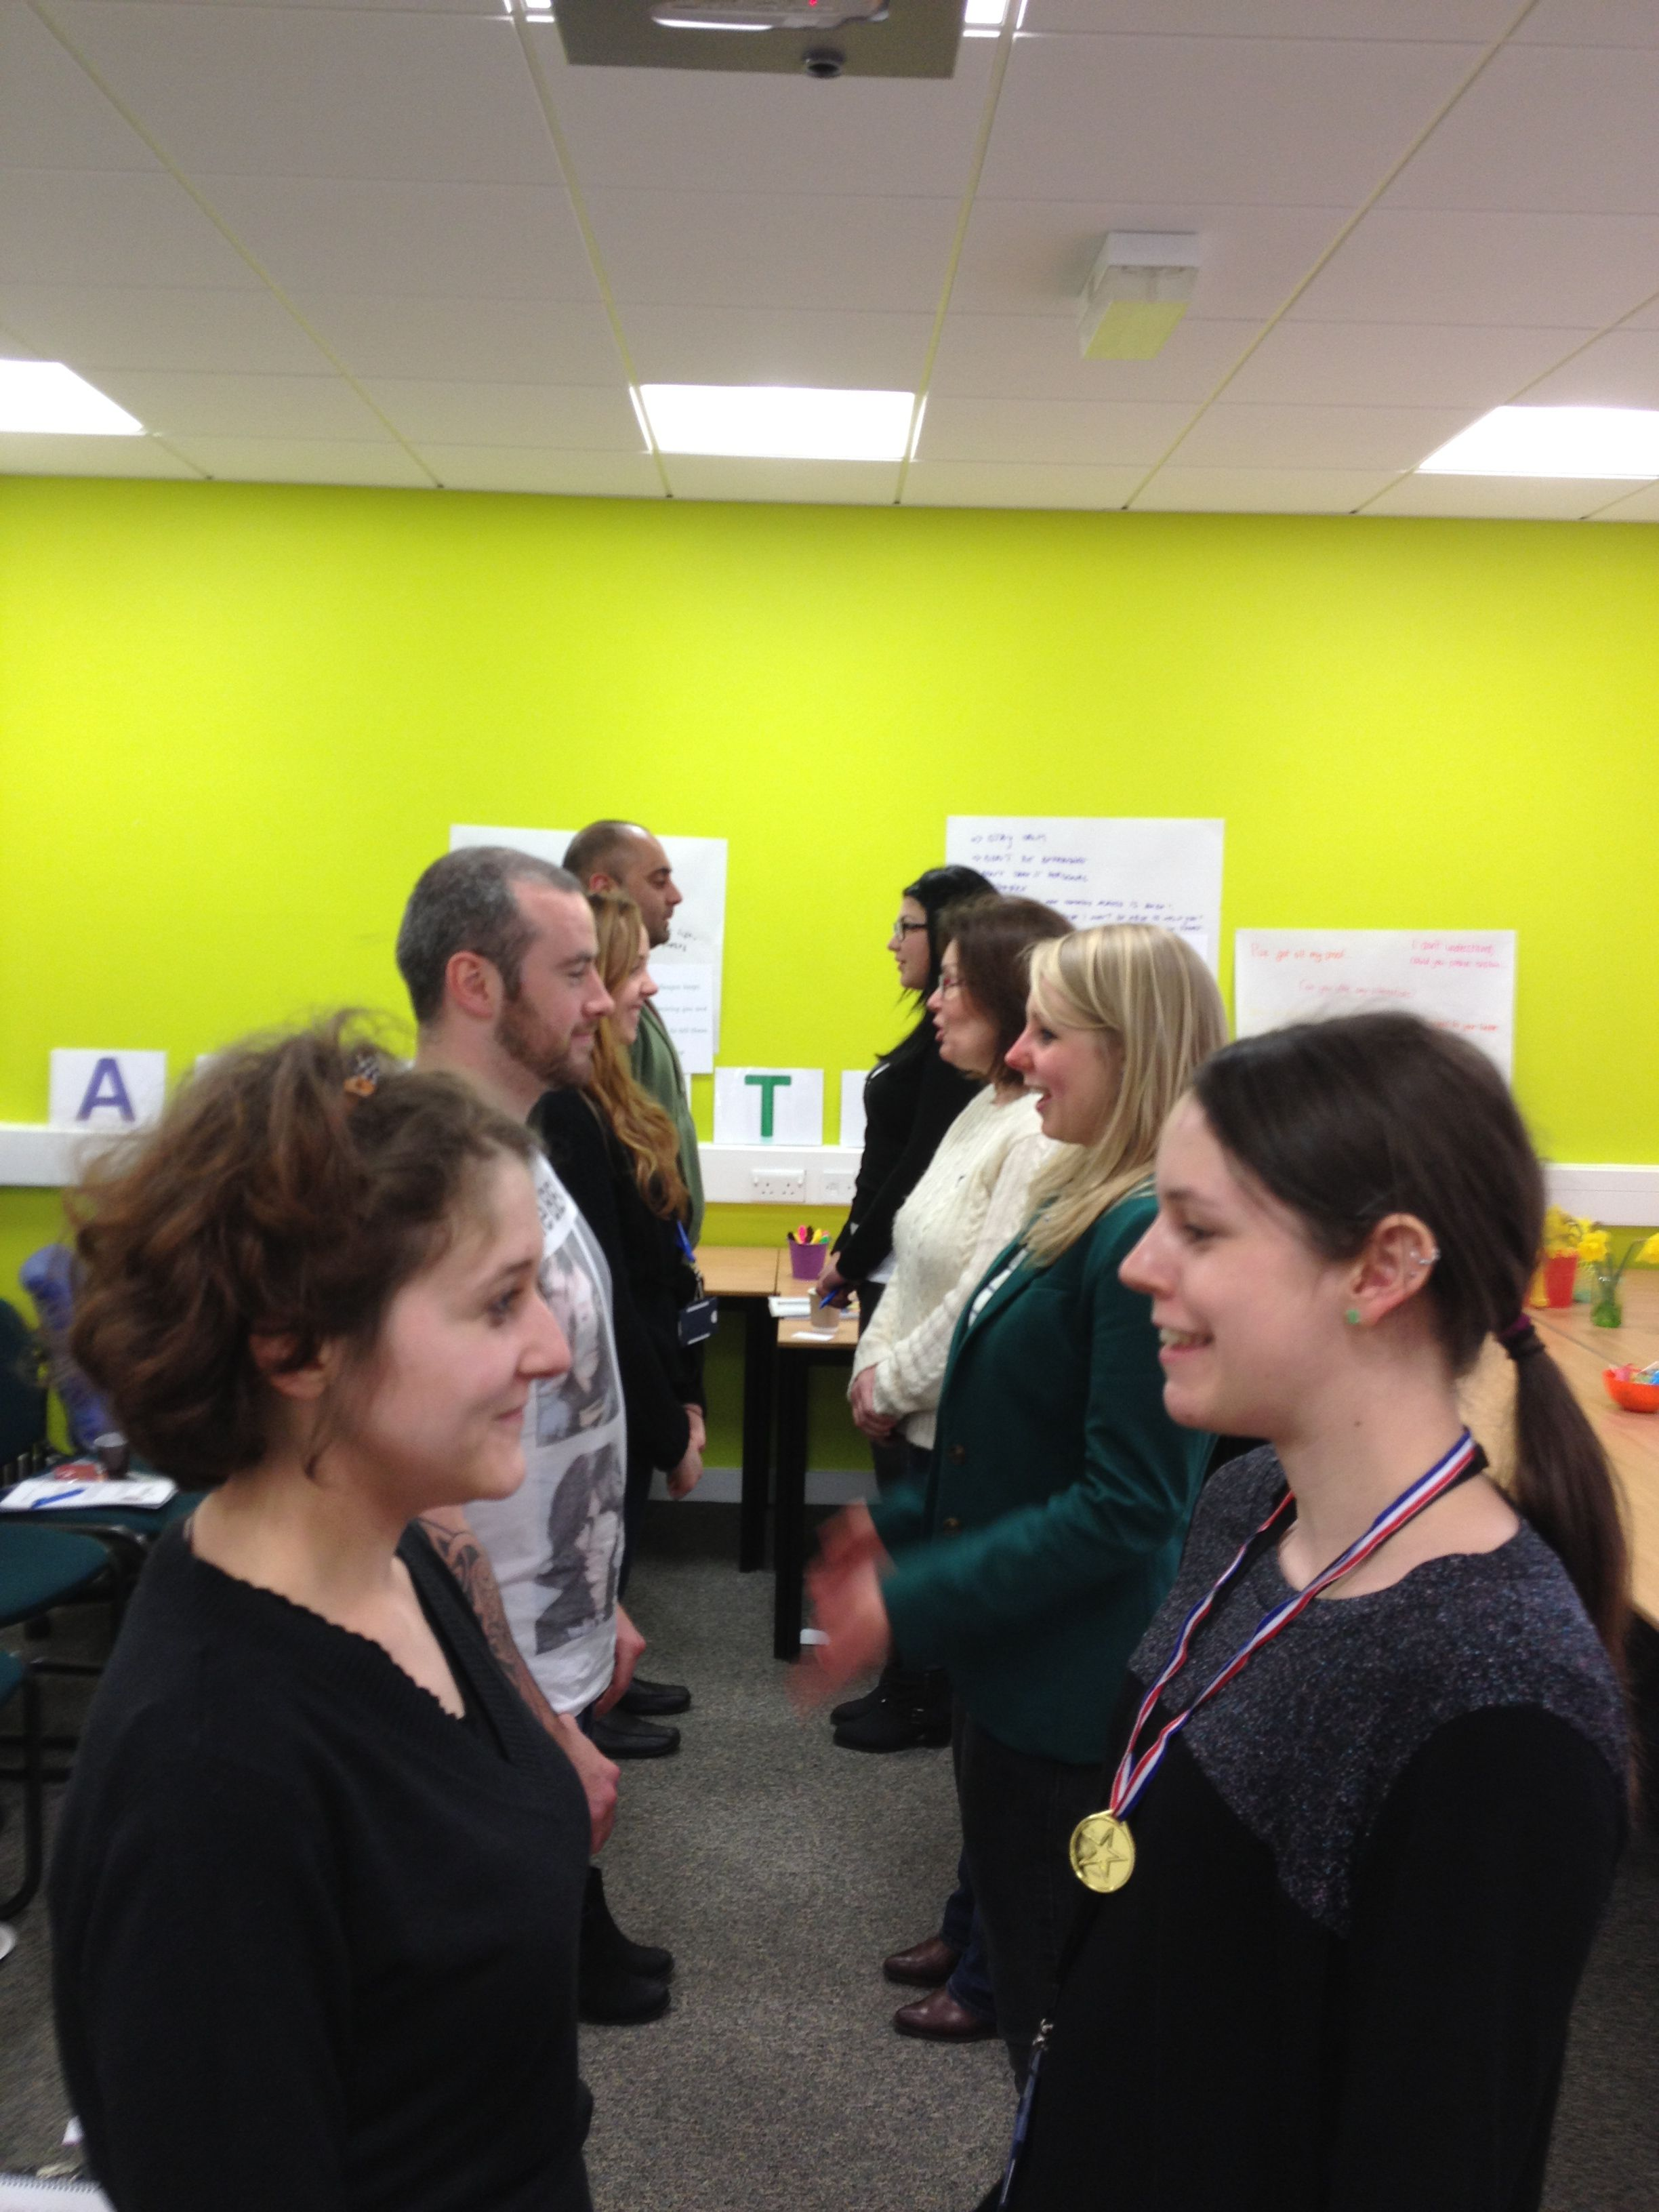 One of our favourite exercises in assertiveness training